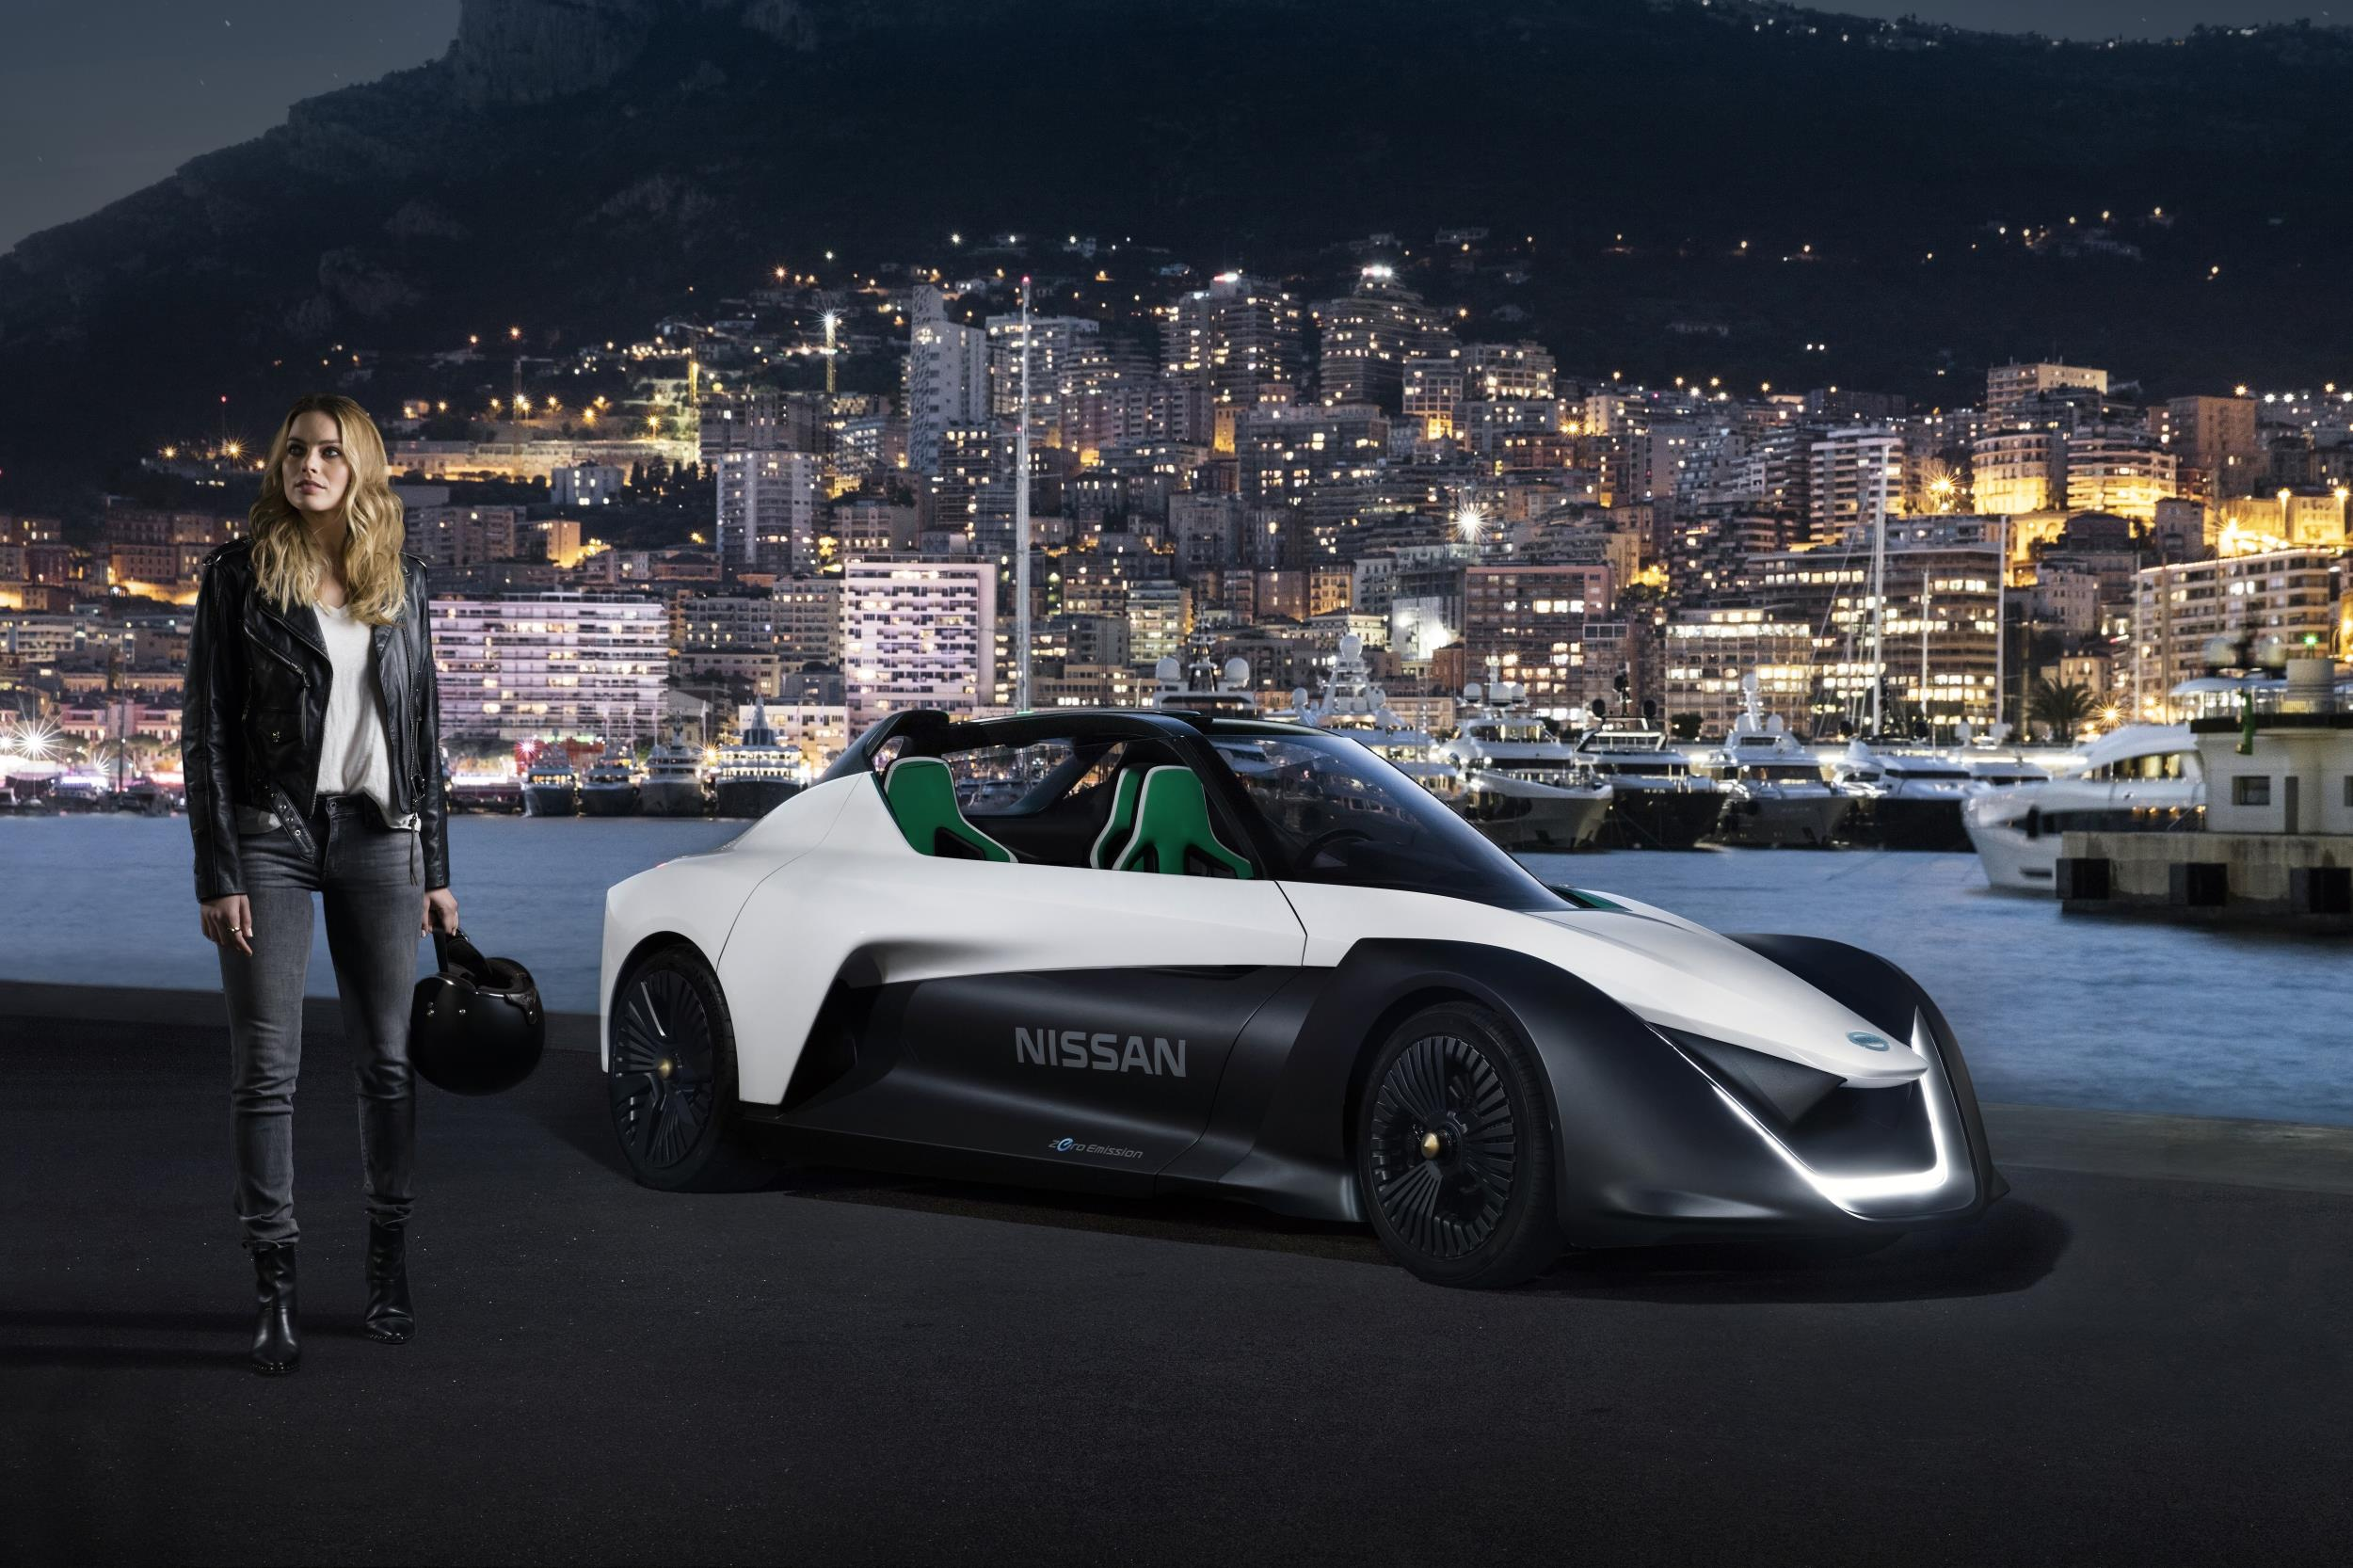 Margot Robbie posing with Nissan Electric Vehicle BladeGlider sports car